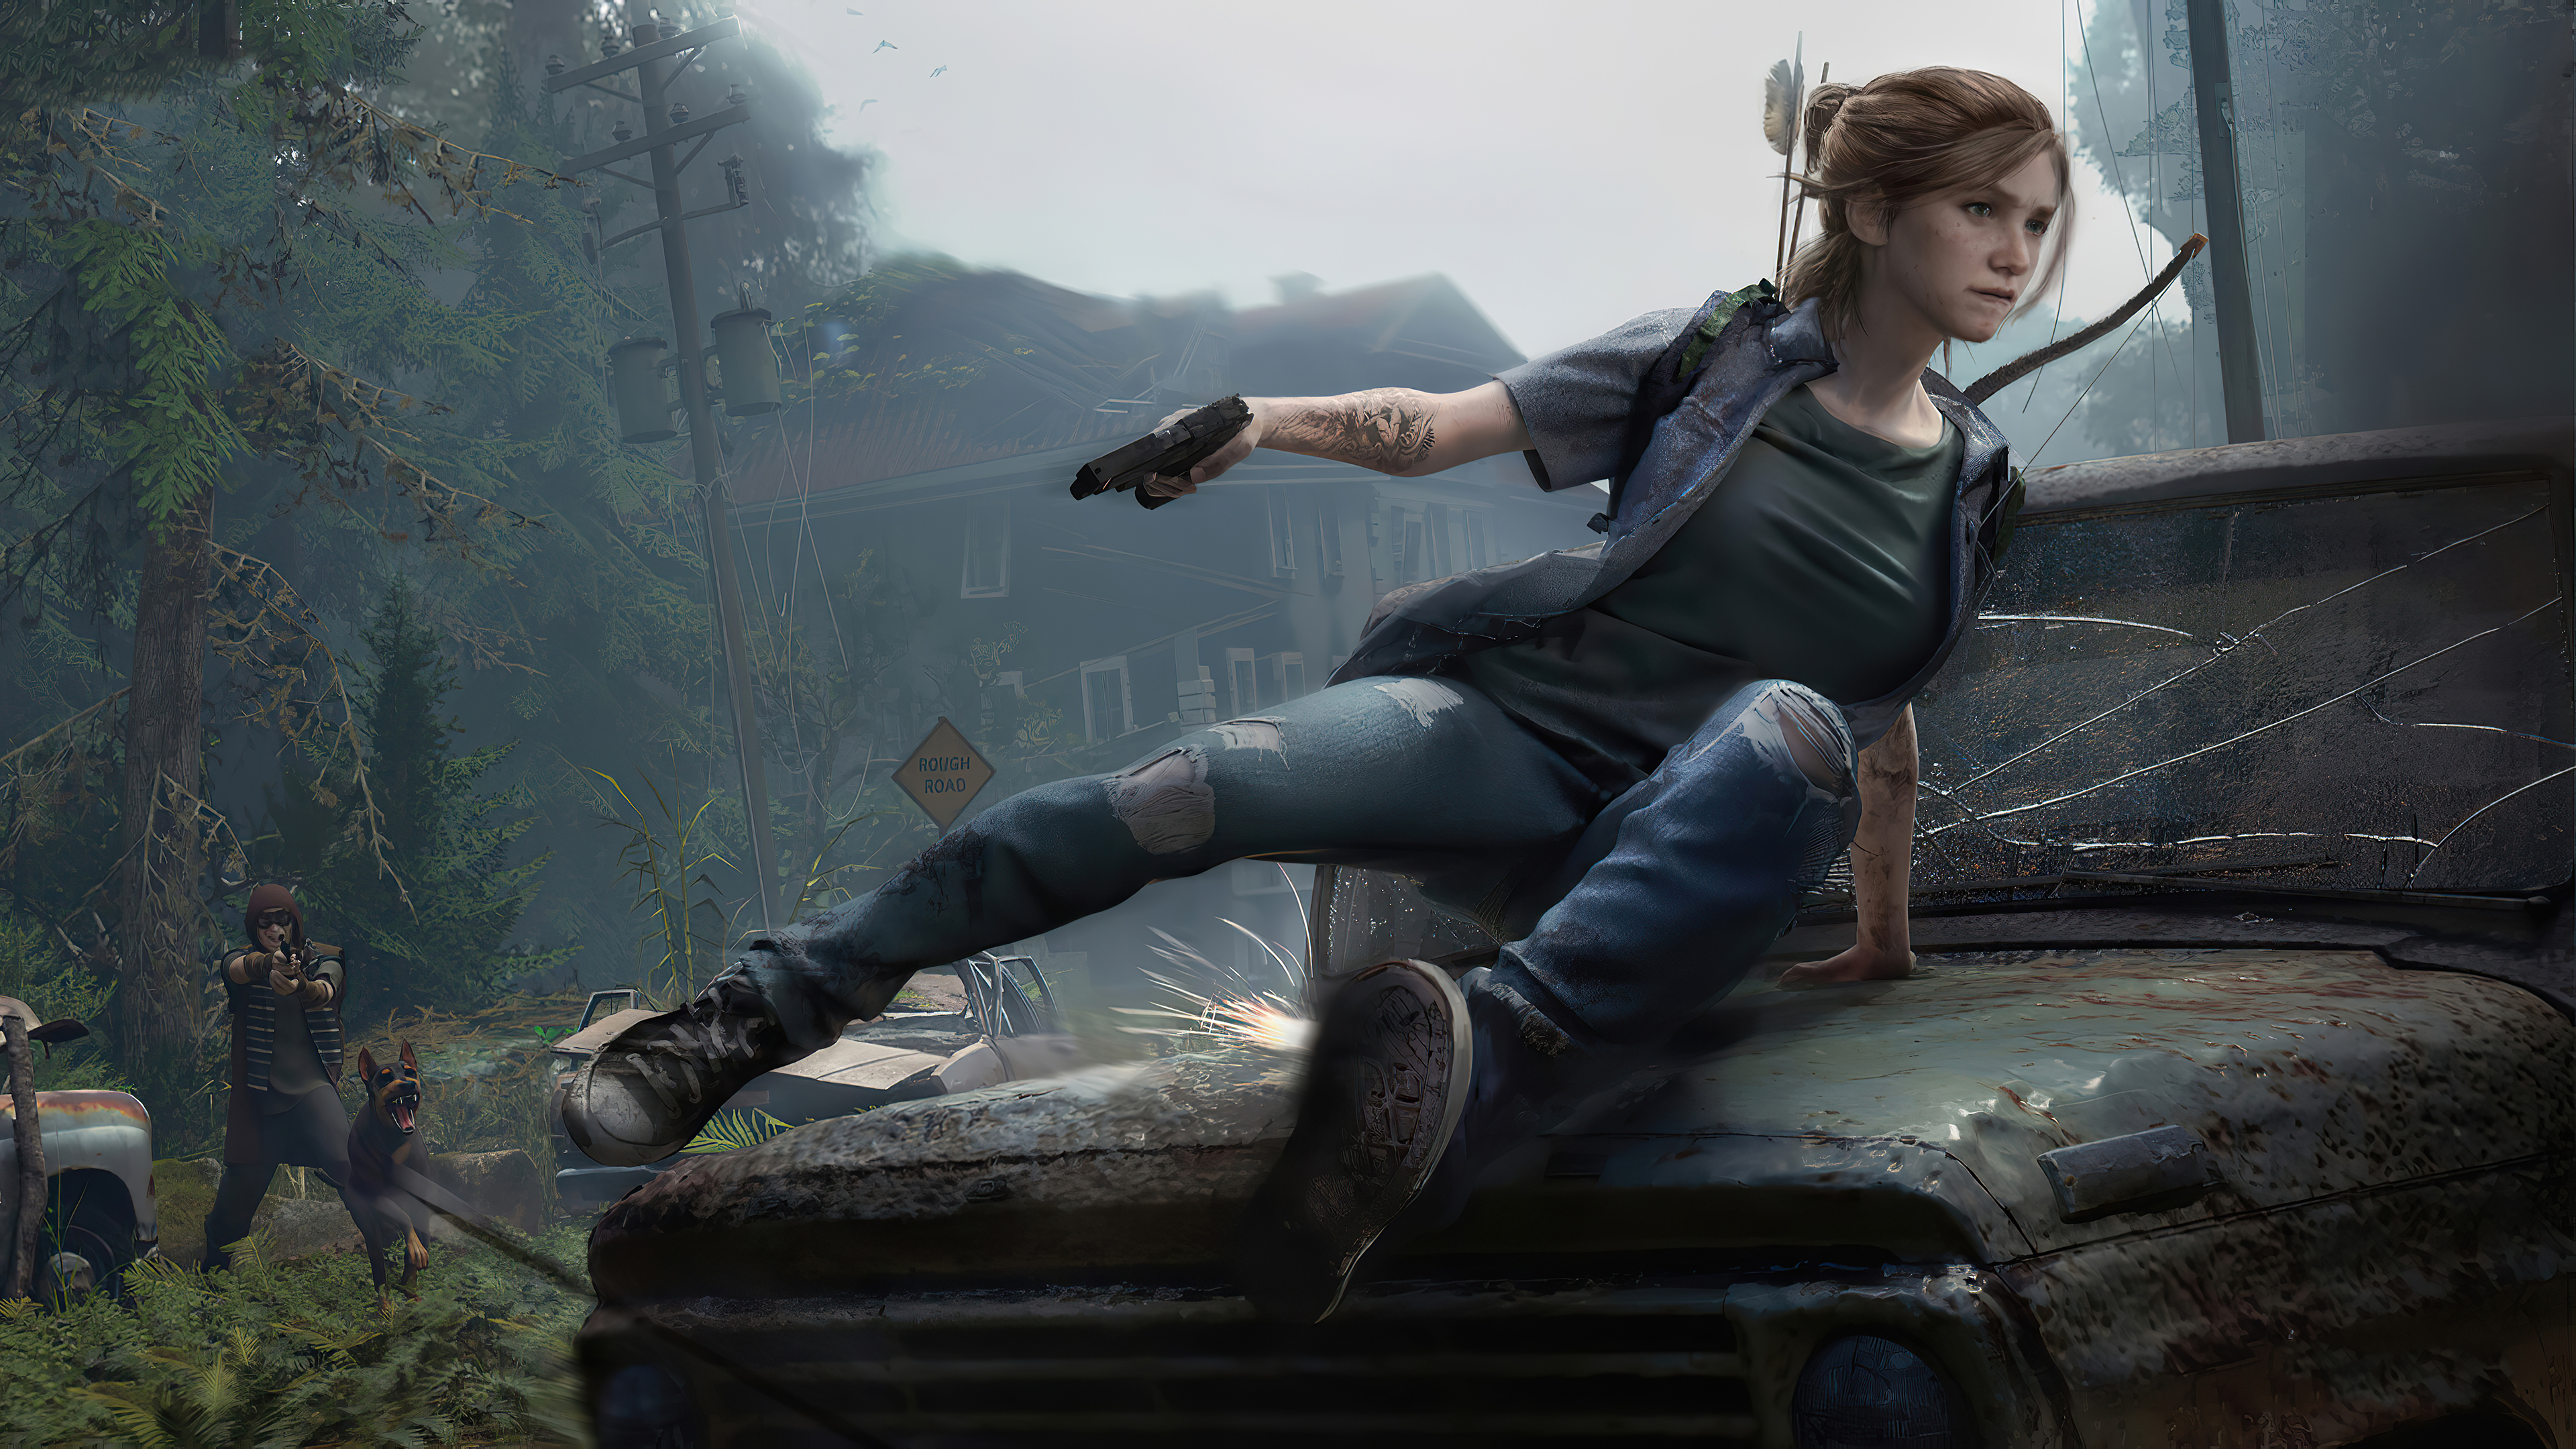 New Ellie The Last Of Us 2 Wallpaper Hd Games 4k Wallpapers Images Photos And Background